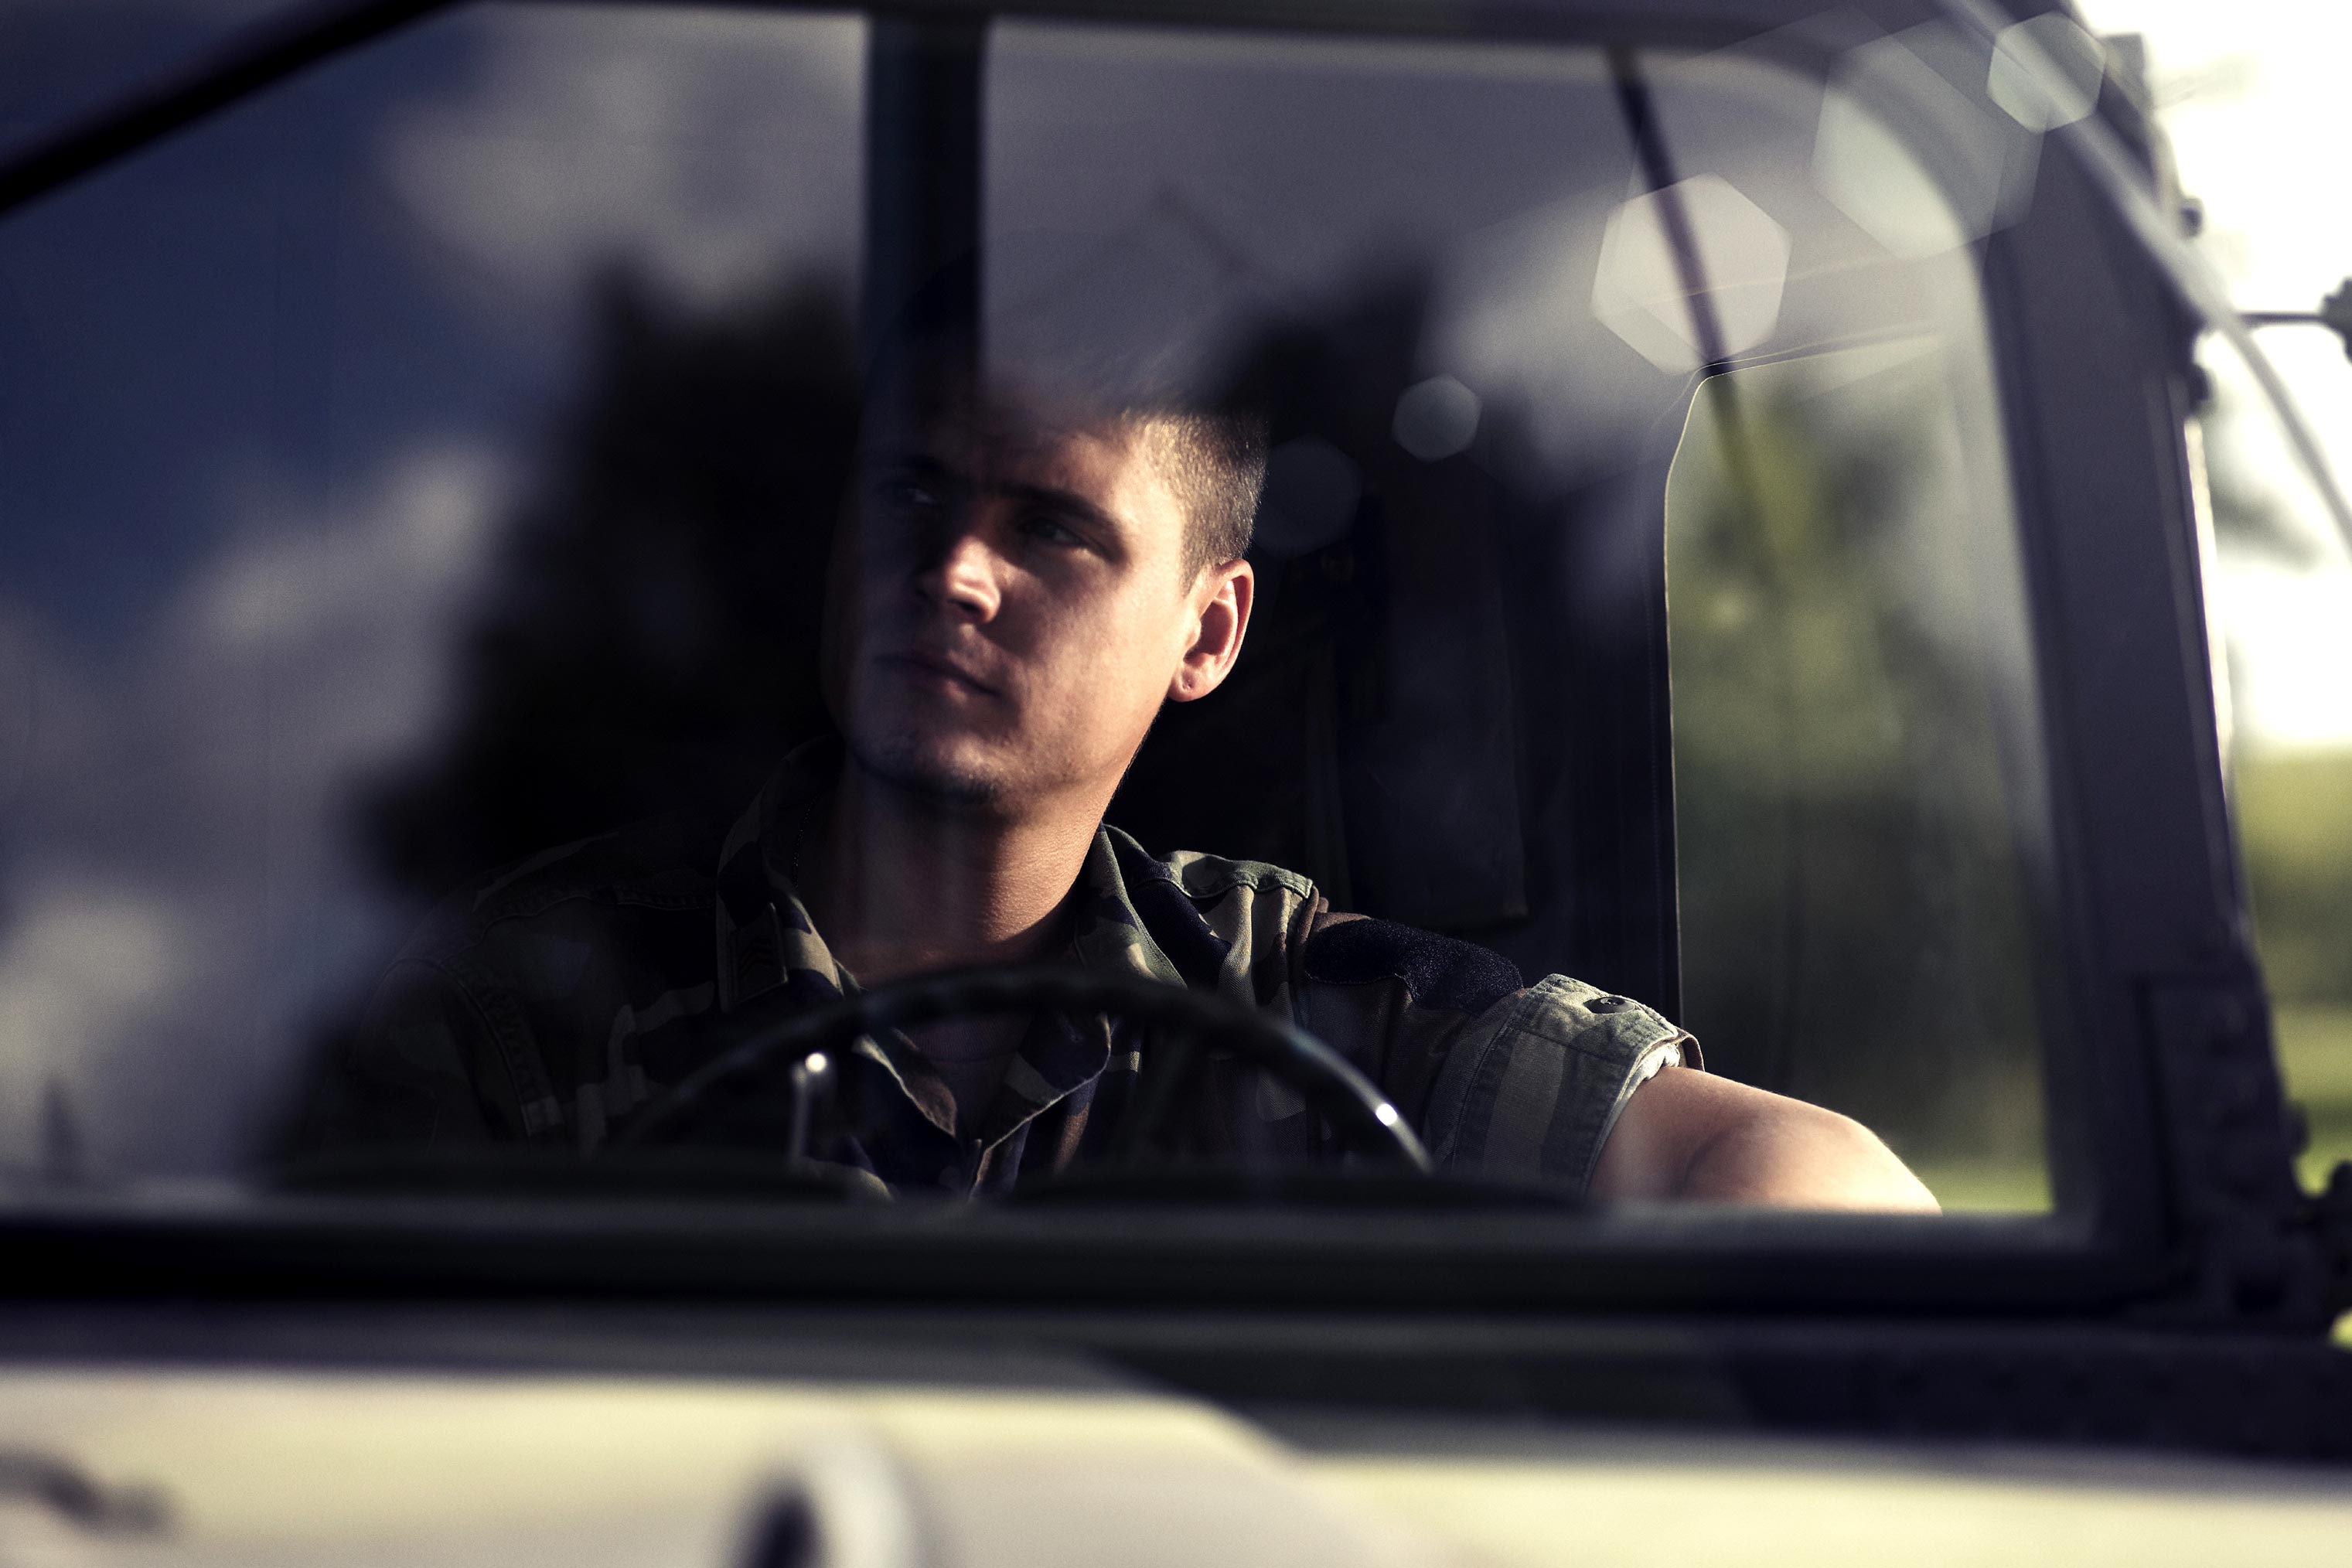 Soldier behind windscreen of red cross army ambulance.